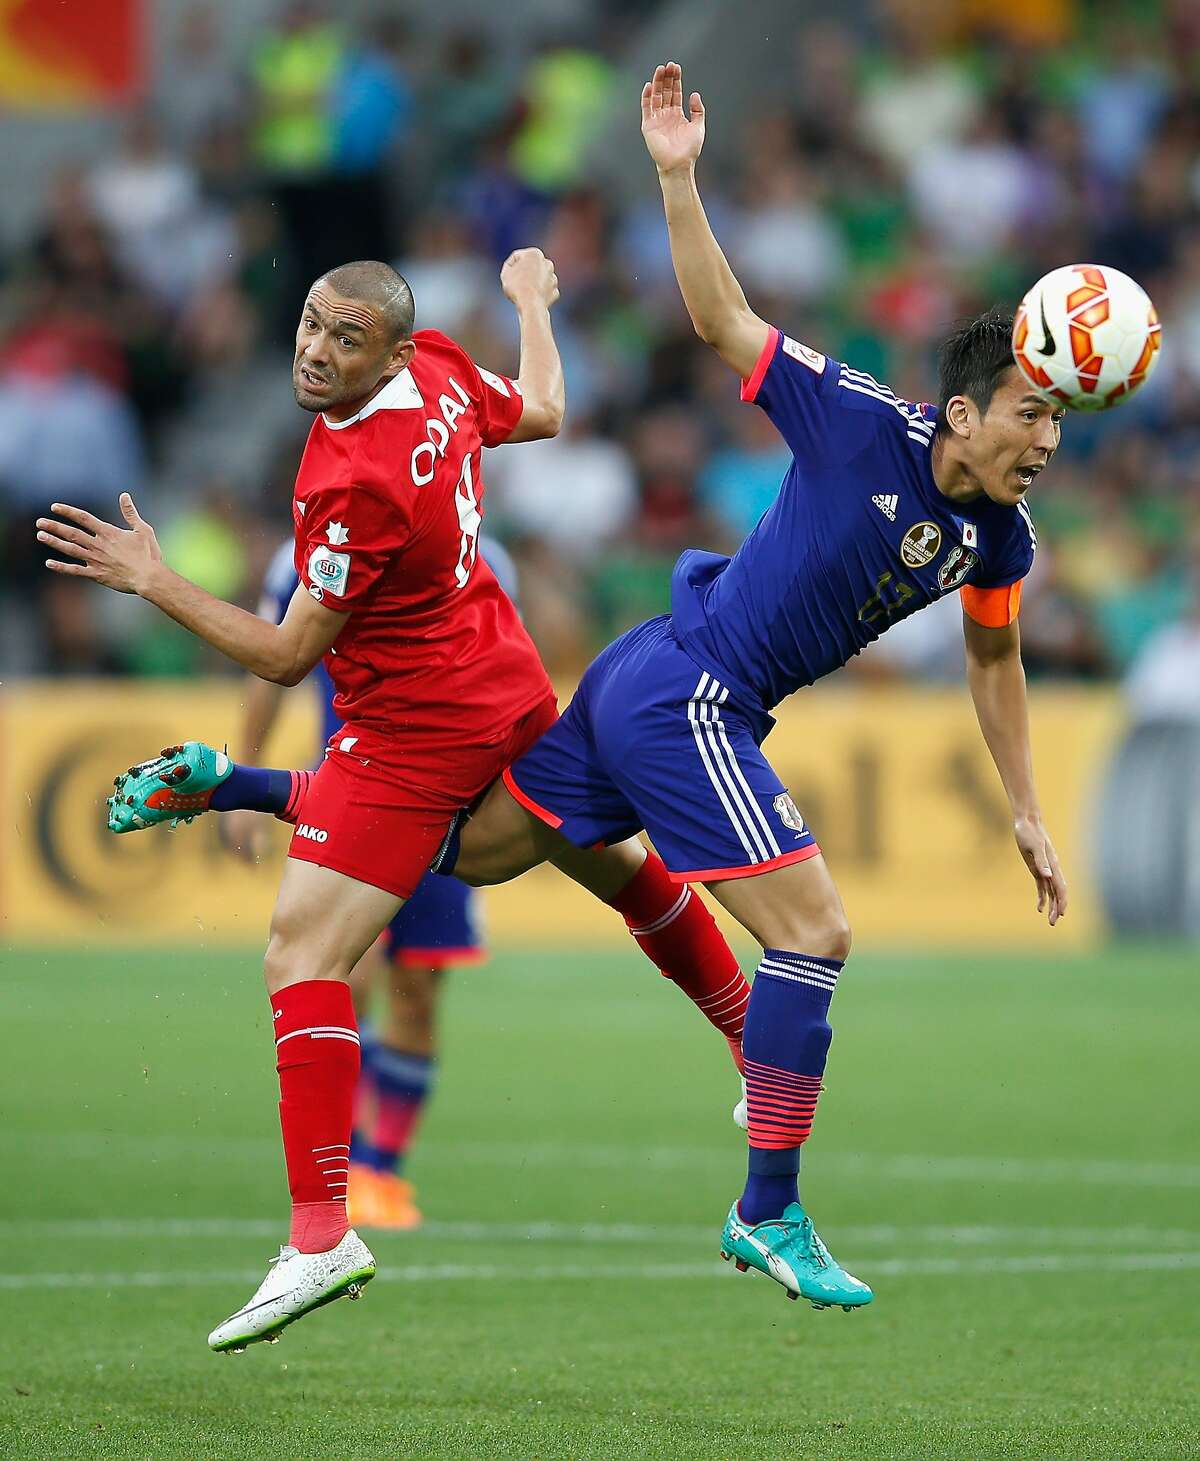 NOW KNOWN AS 'OCTAVE-HIGHER ODAI': Odai Al Saify of Jordan and Makoto Hasebe collide while going for the ball during an Asian Cup match between Japan and Jordan in Melbourne.